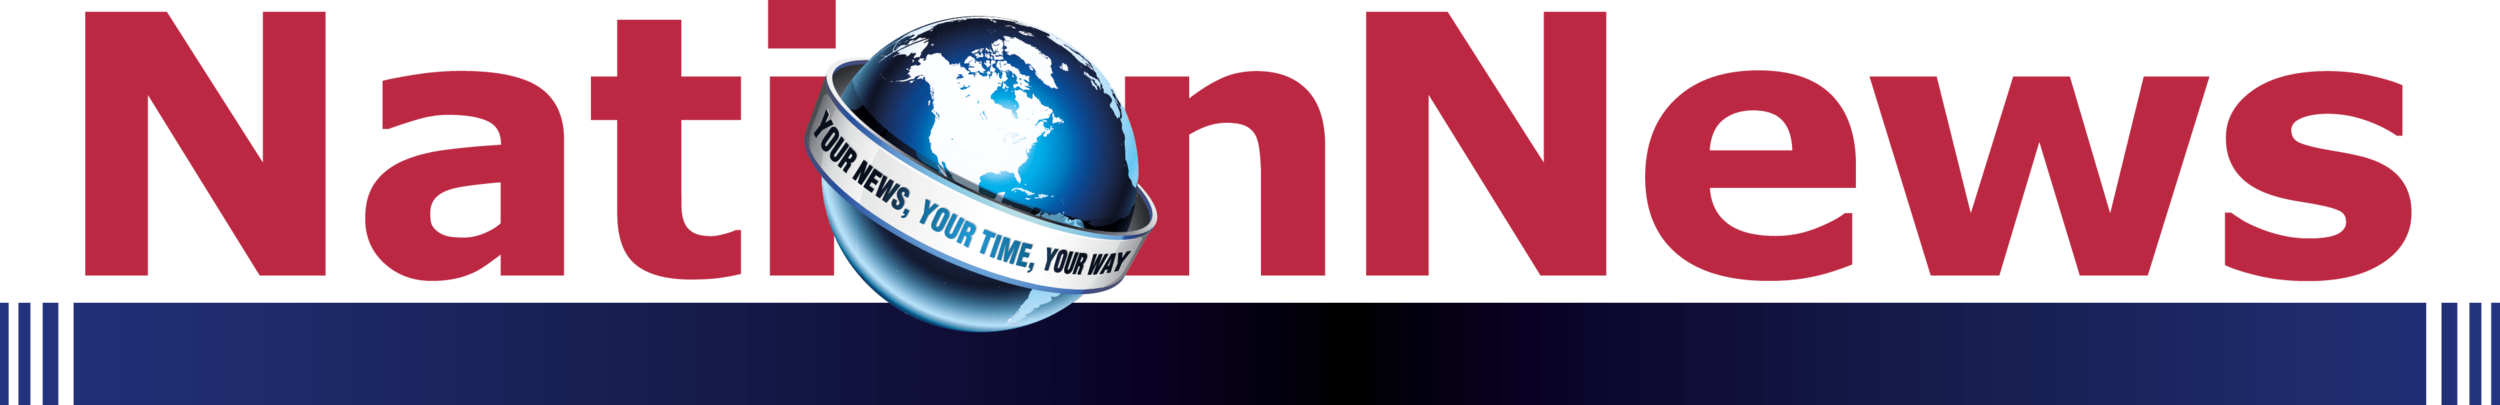 nationnew_logo.png